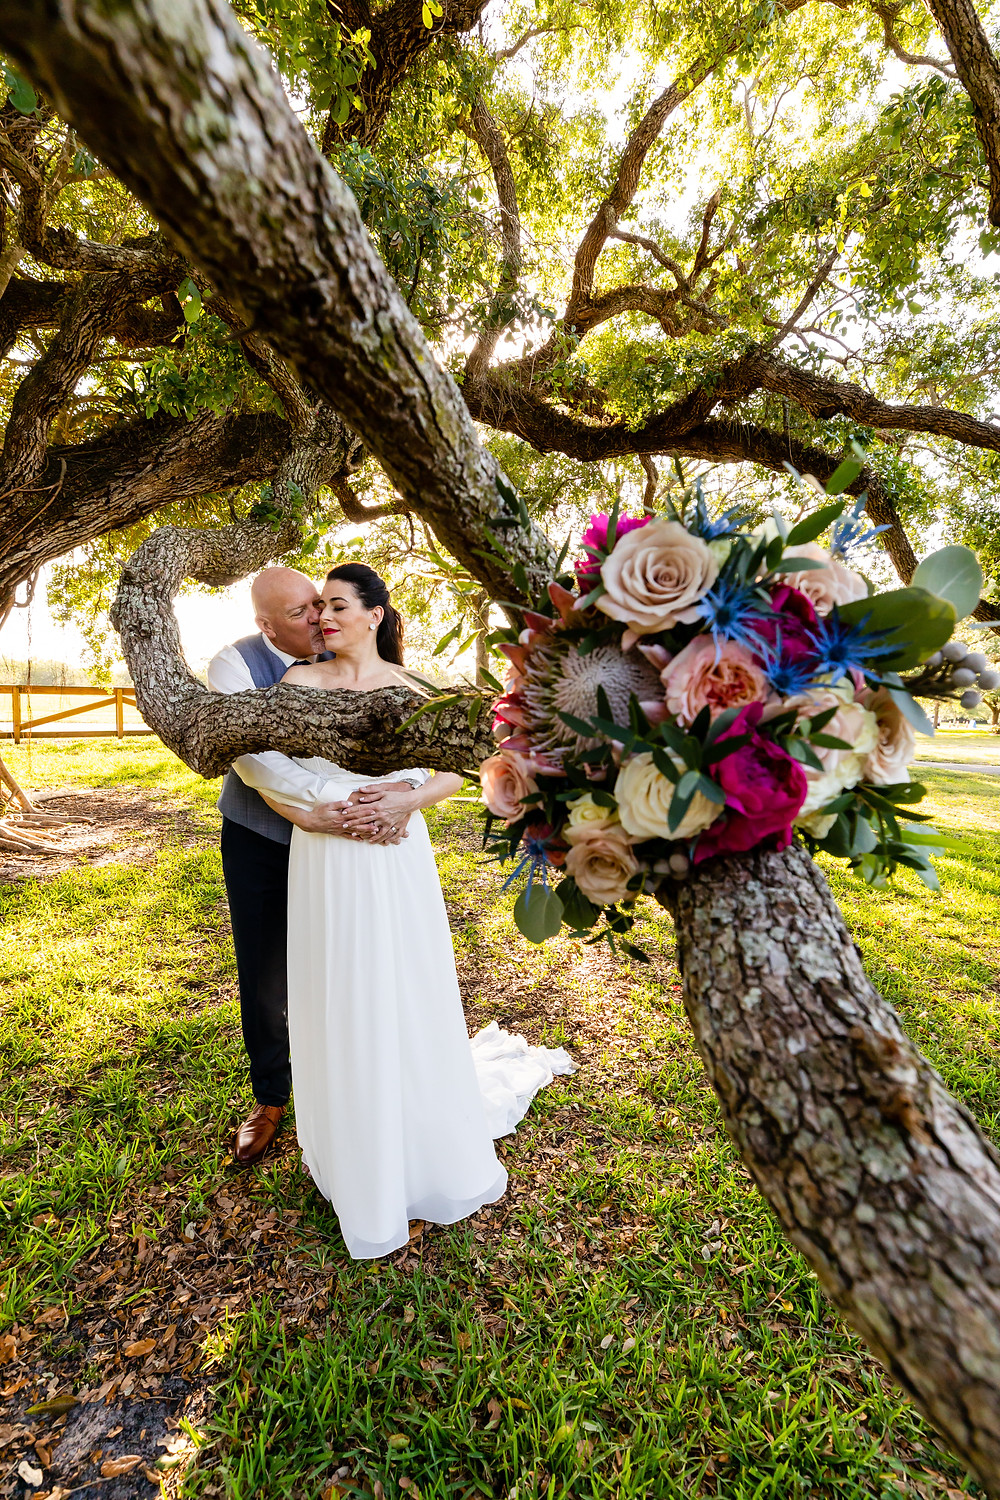 Cincinnati wedding photographer captures image of husband and wife hugging each other kissing with a bouquet of flowers among the trees in the park.